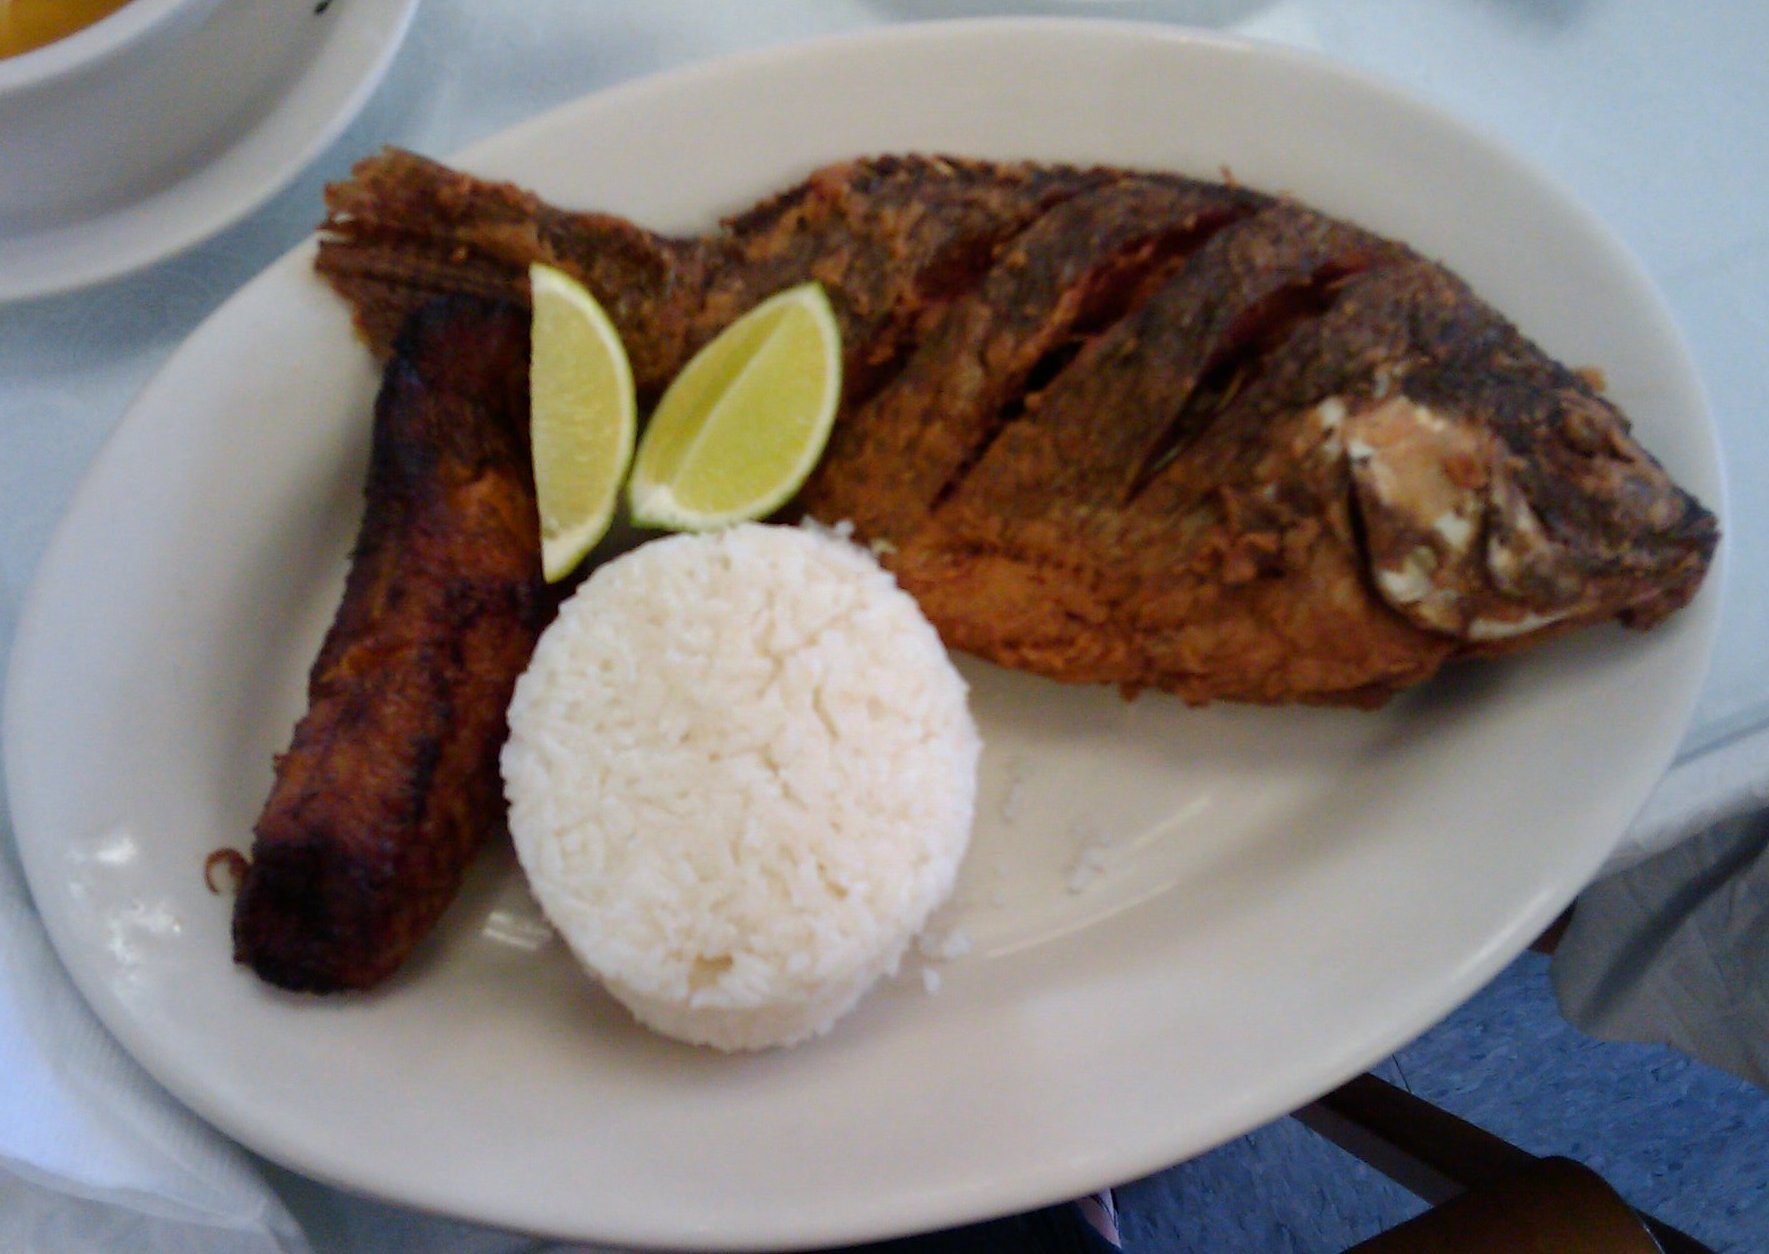 Colombian Bakery Whole Fried Fish